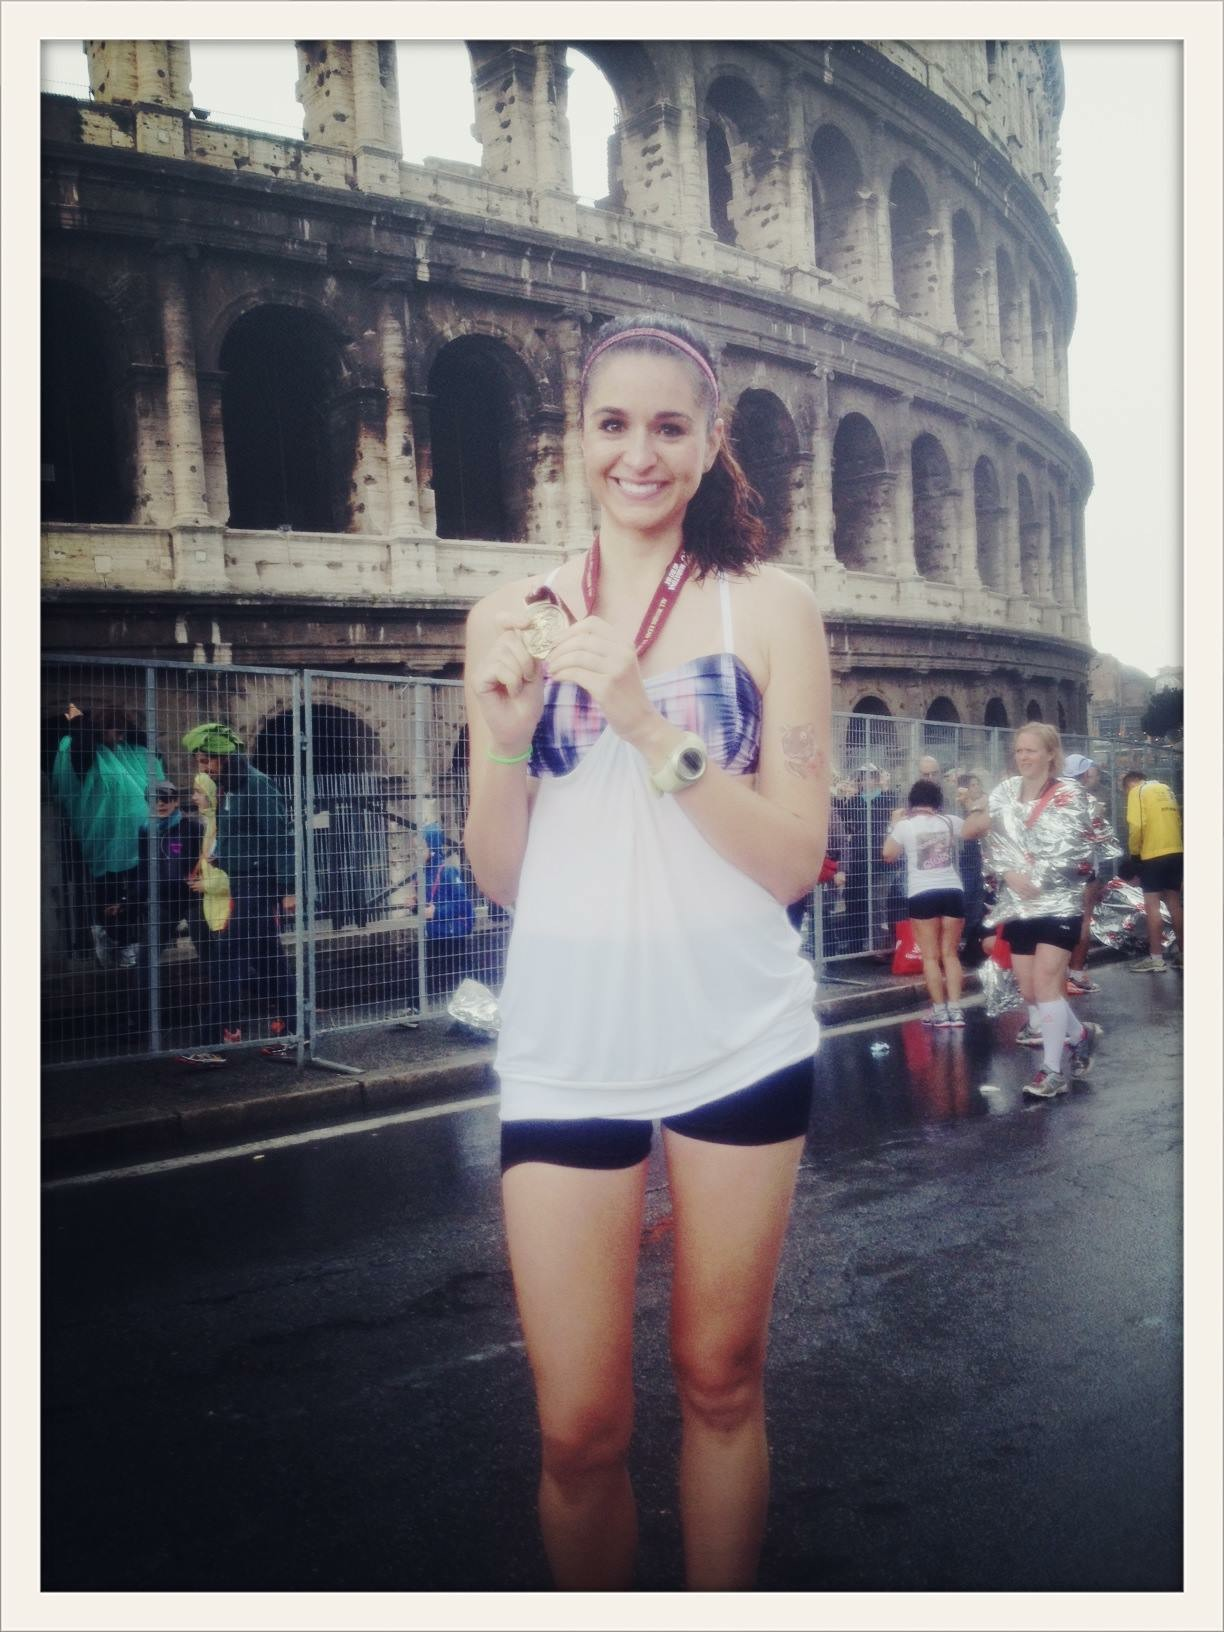 Marathon #1 of 6 in 23 month: MARATONA DI ROMA (absolutely the most scenic race. SO special. also SO SO rainy & cold.)